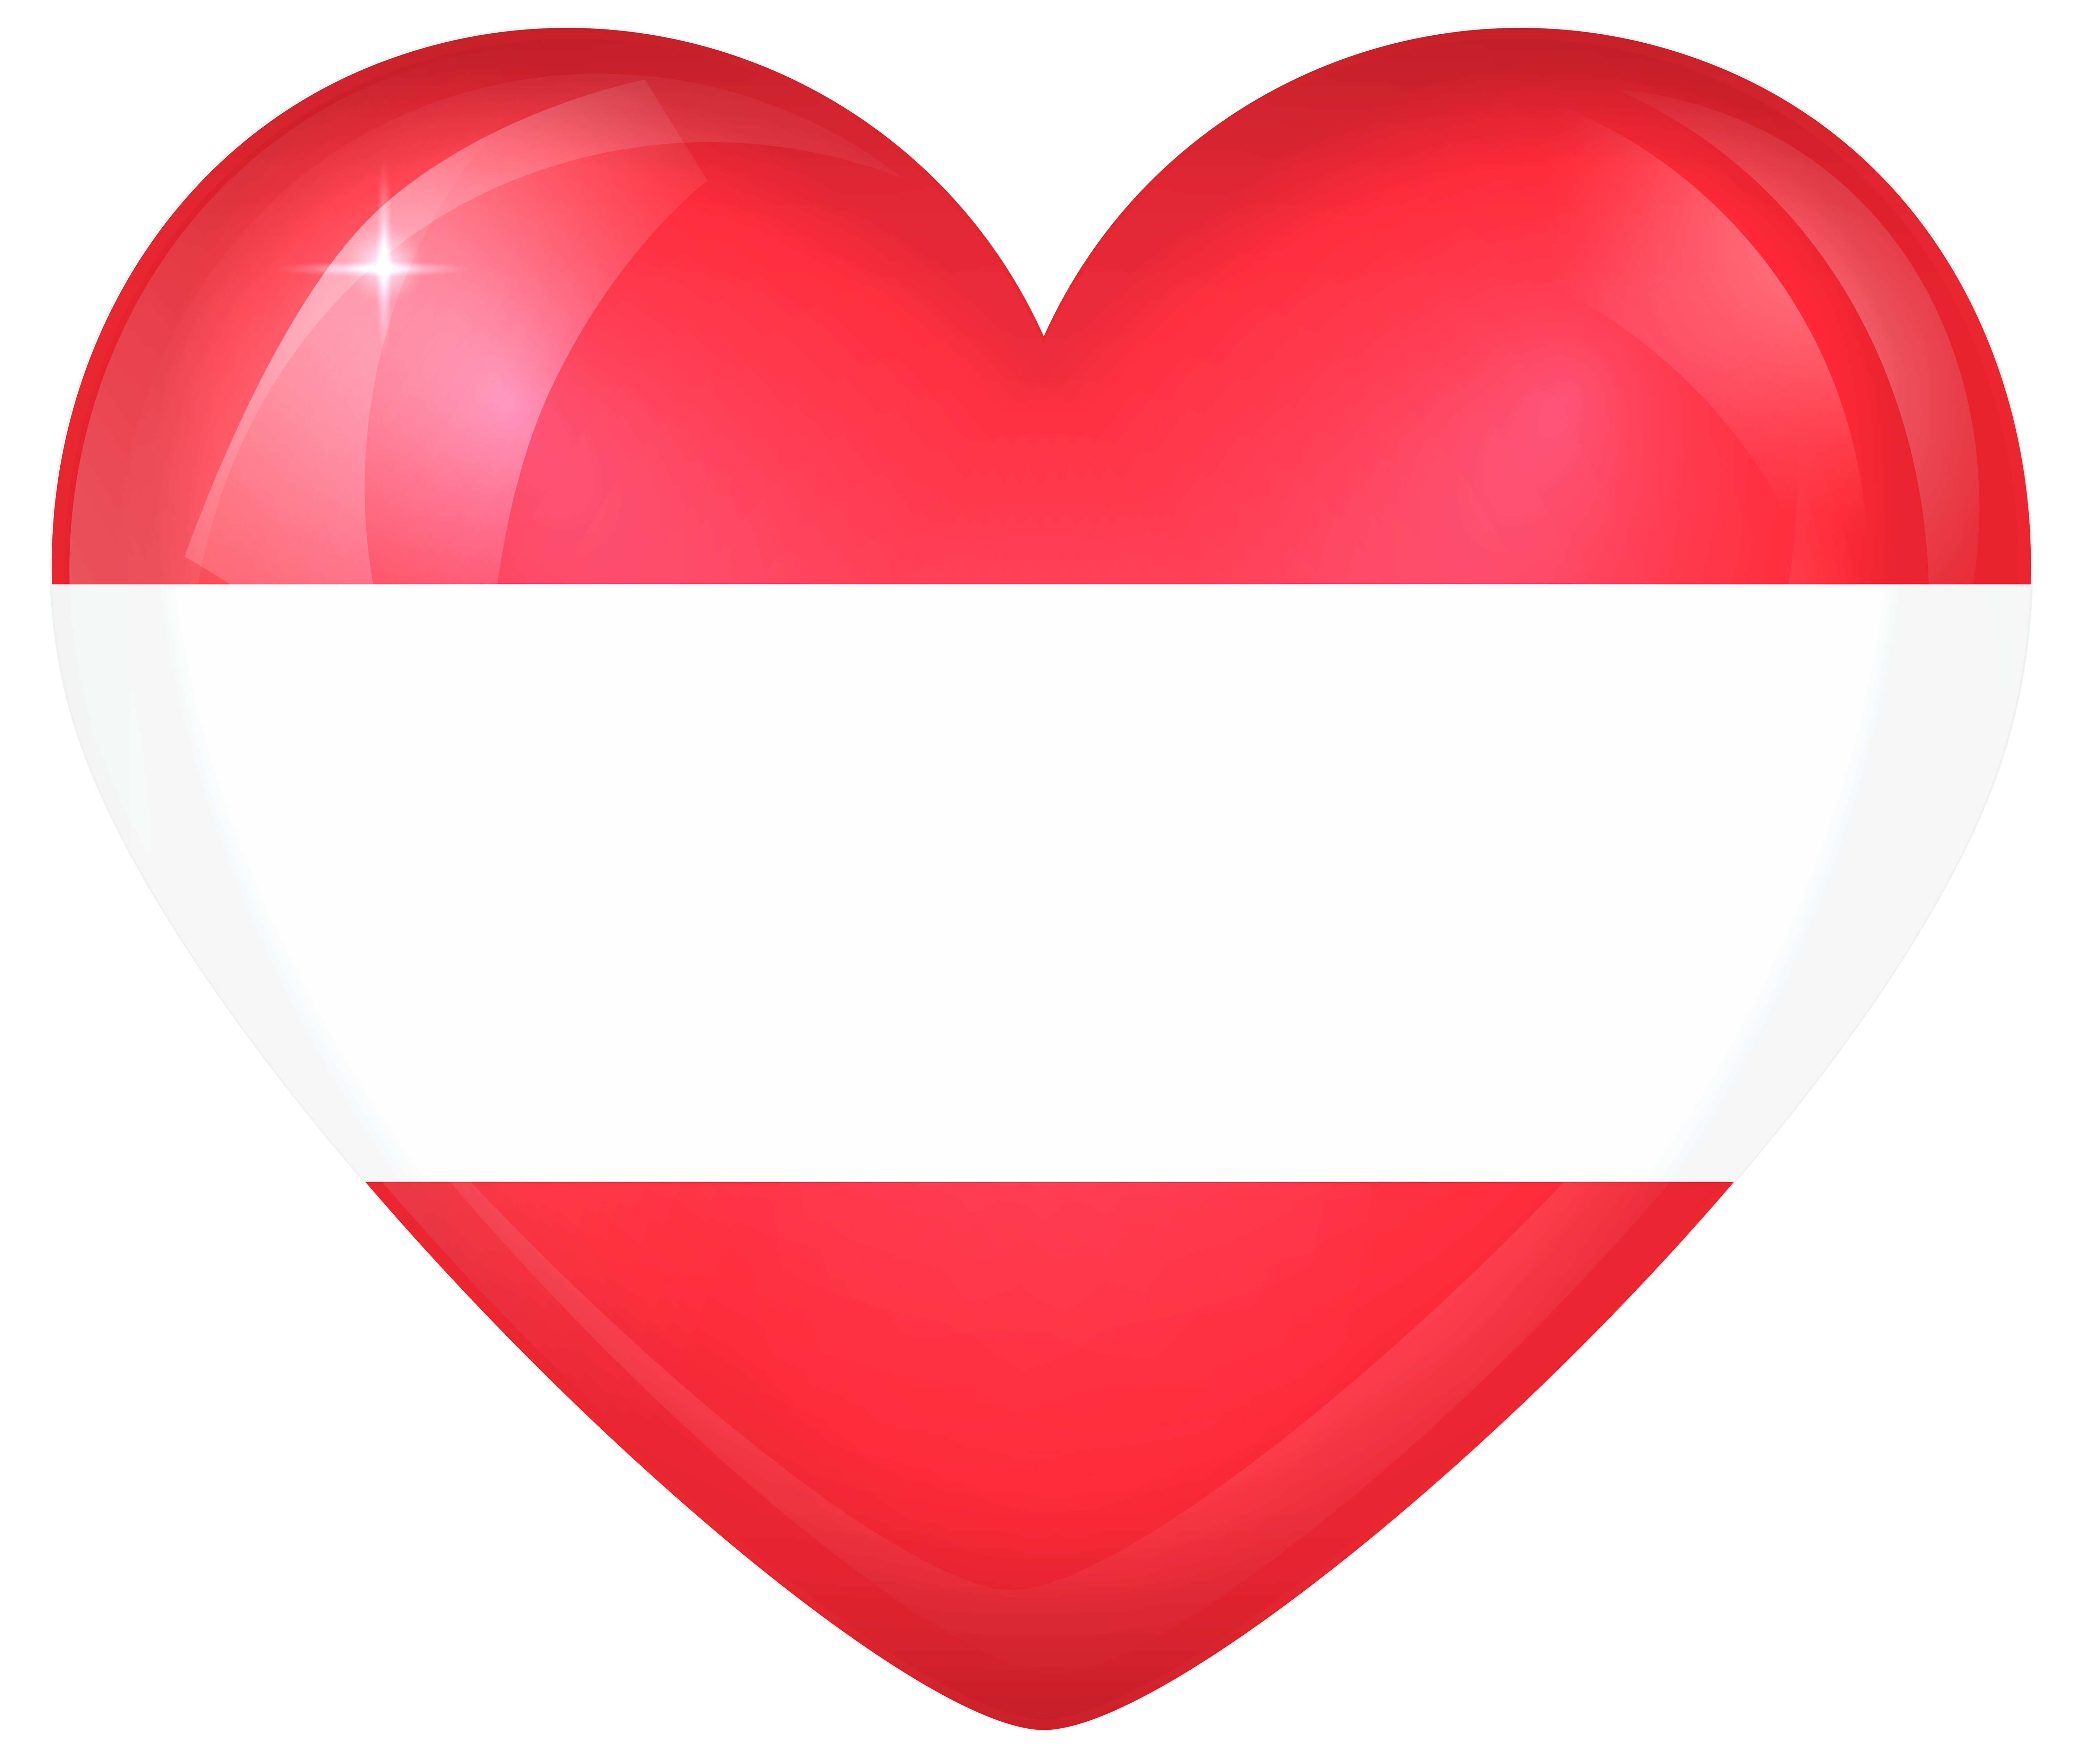 Austria large heart gallery. Hearts clipart flag